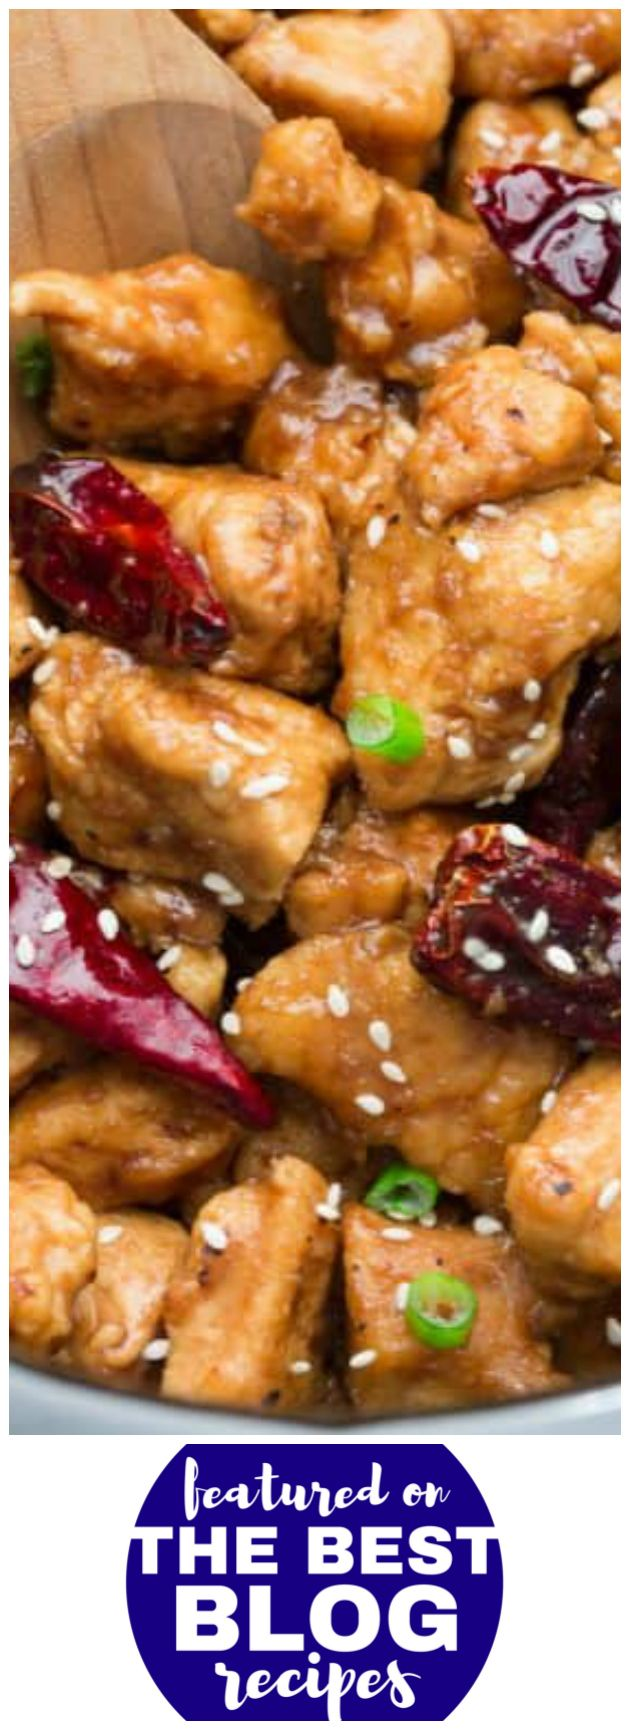 SLOW COOKER GENERAL TSO'S CHICKEN from Life Made Sweeter is #5 on our list of the BEST INSTANT POT RECIPES    Featured on The Best Blog Recipes with the bloggers permissions #instantpot #dinner #chinese #food